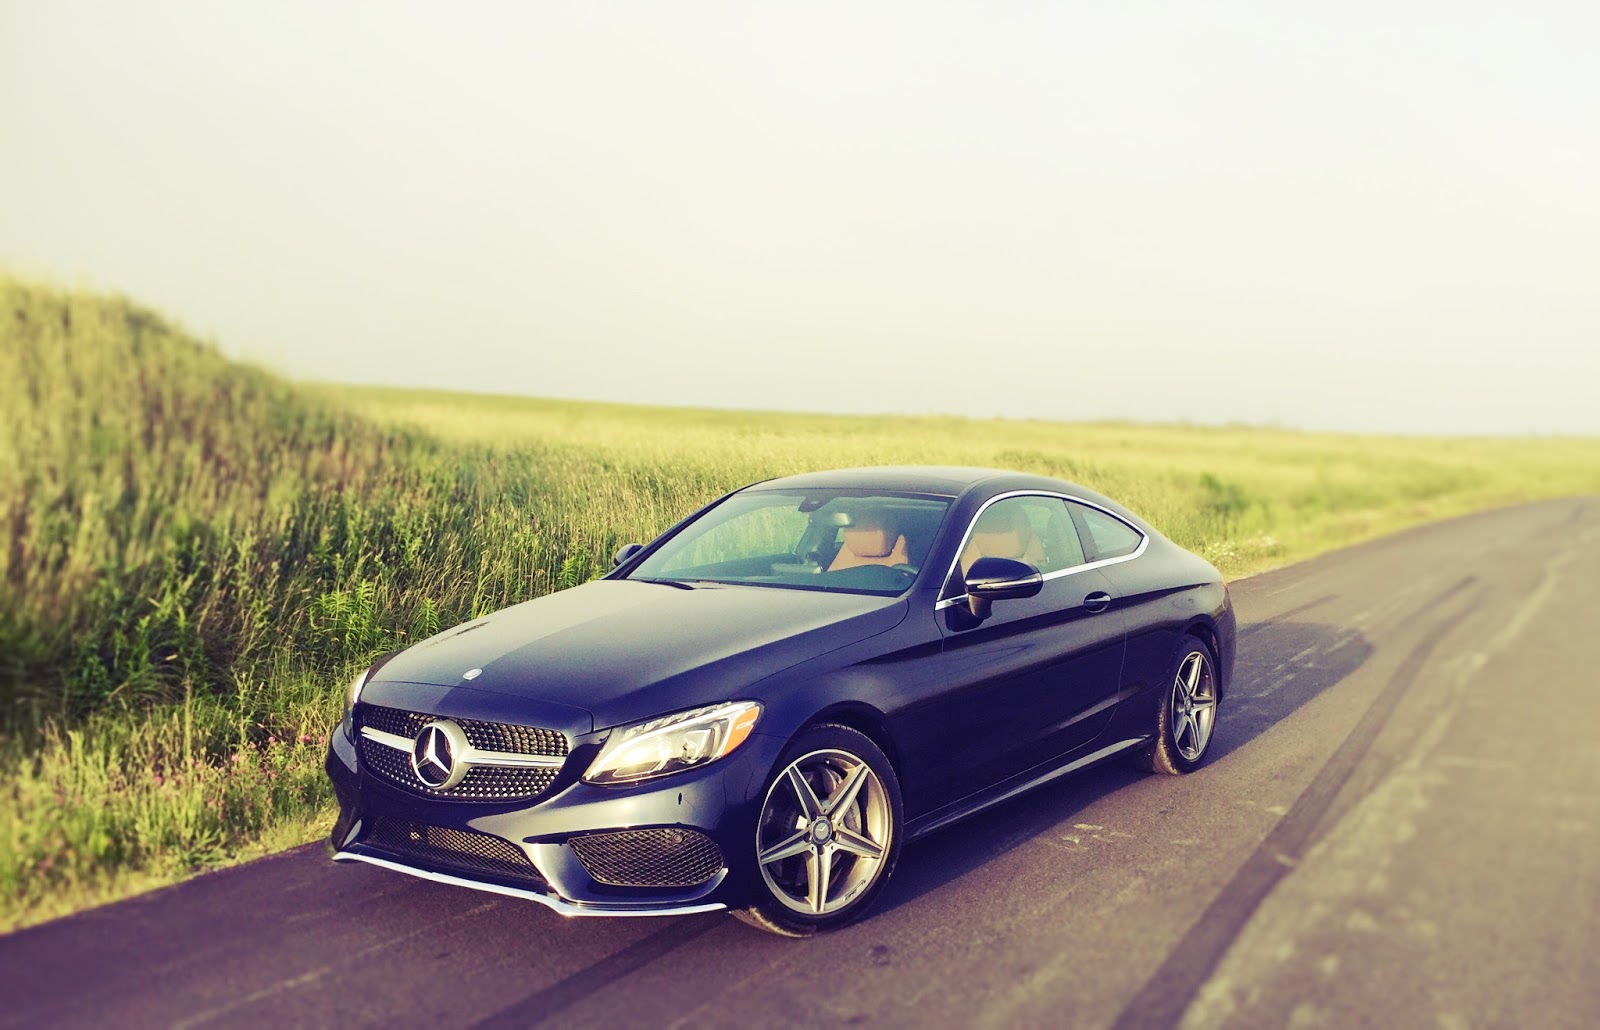 2017 mercedes benz c300 4matic coupe review yes for Mercedes benz c300 review 2017